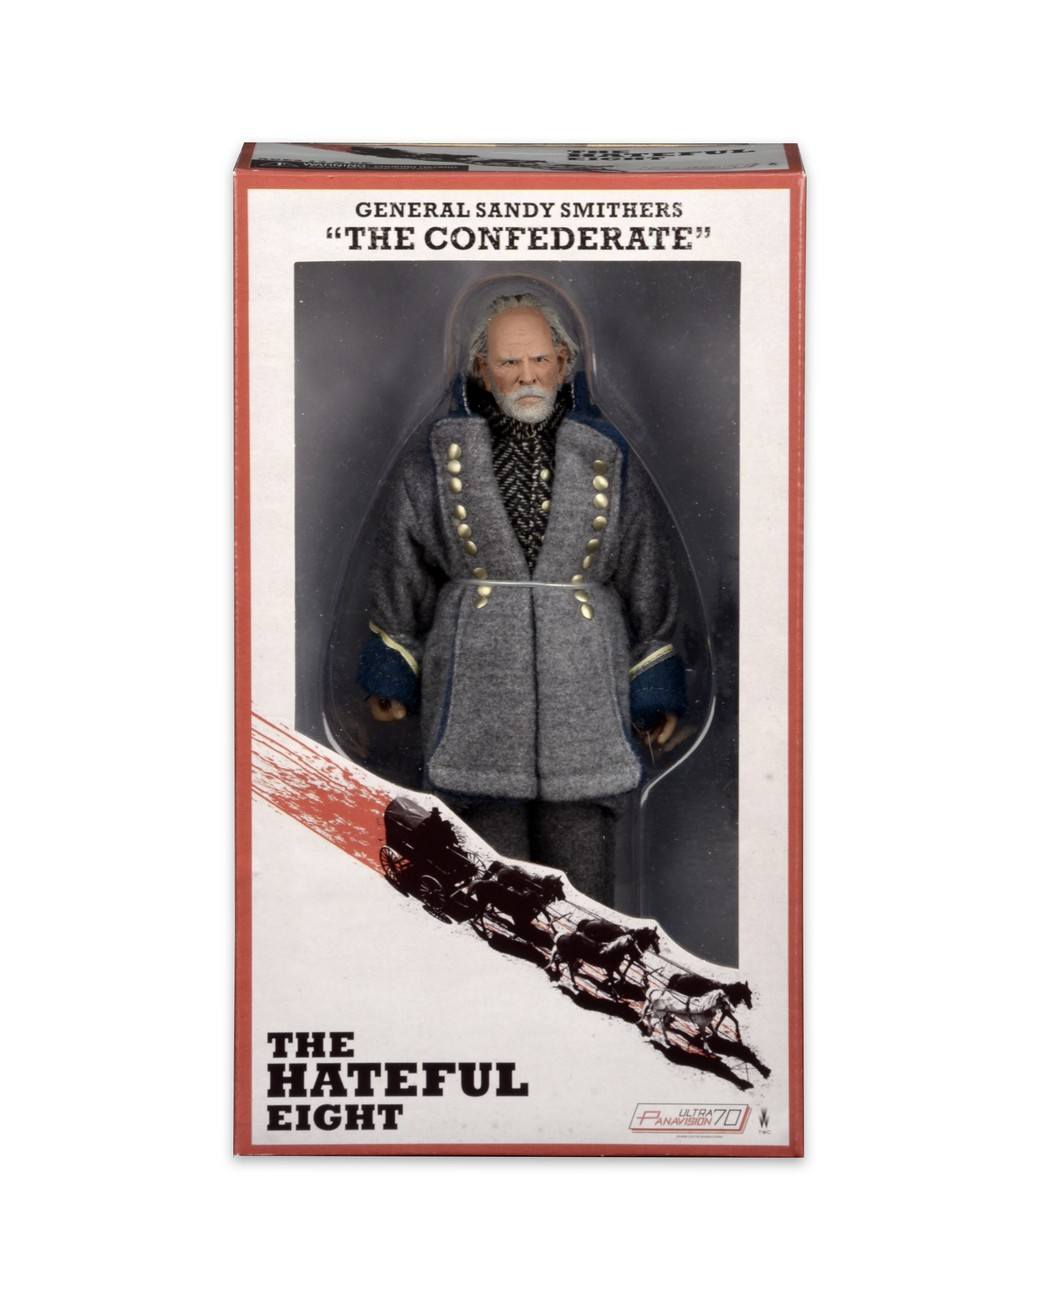 "The Hateful Eight: 8 General Sandy Smithers ""The Confederate"""